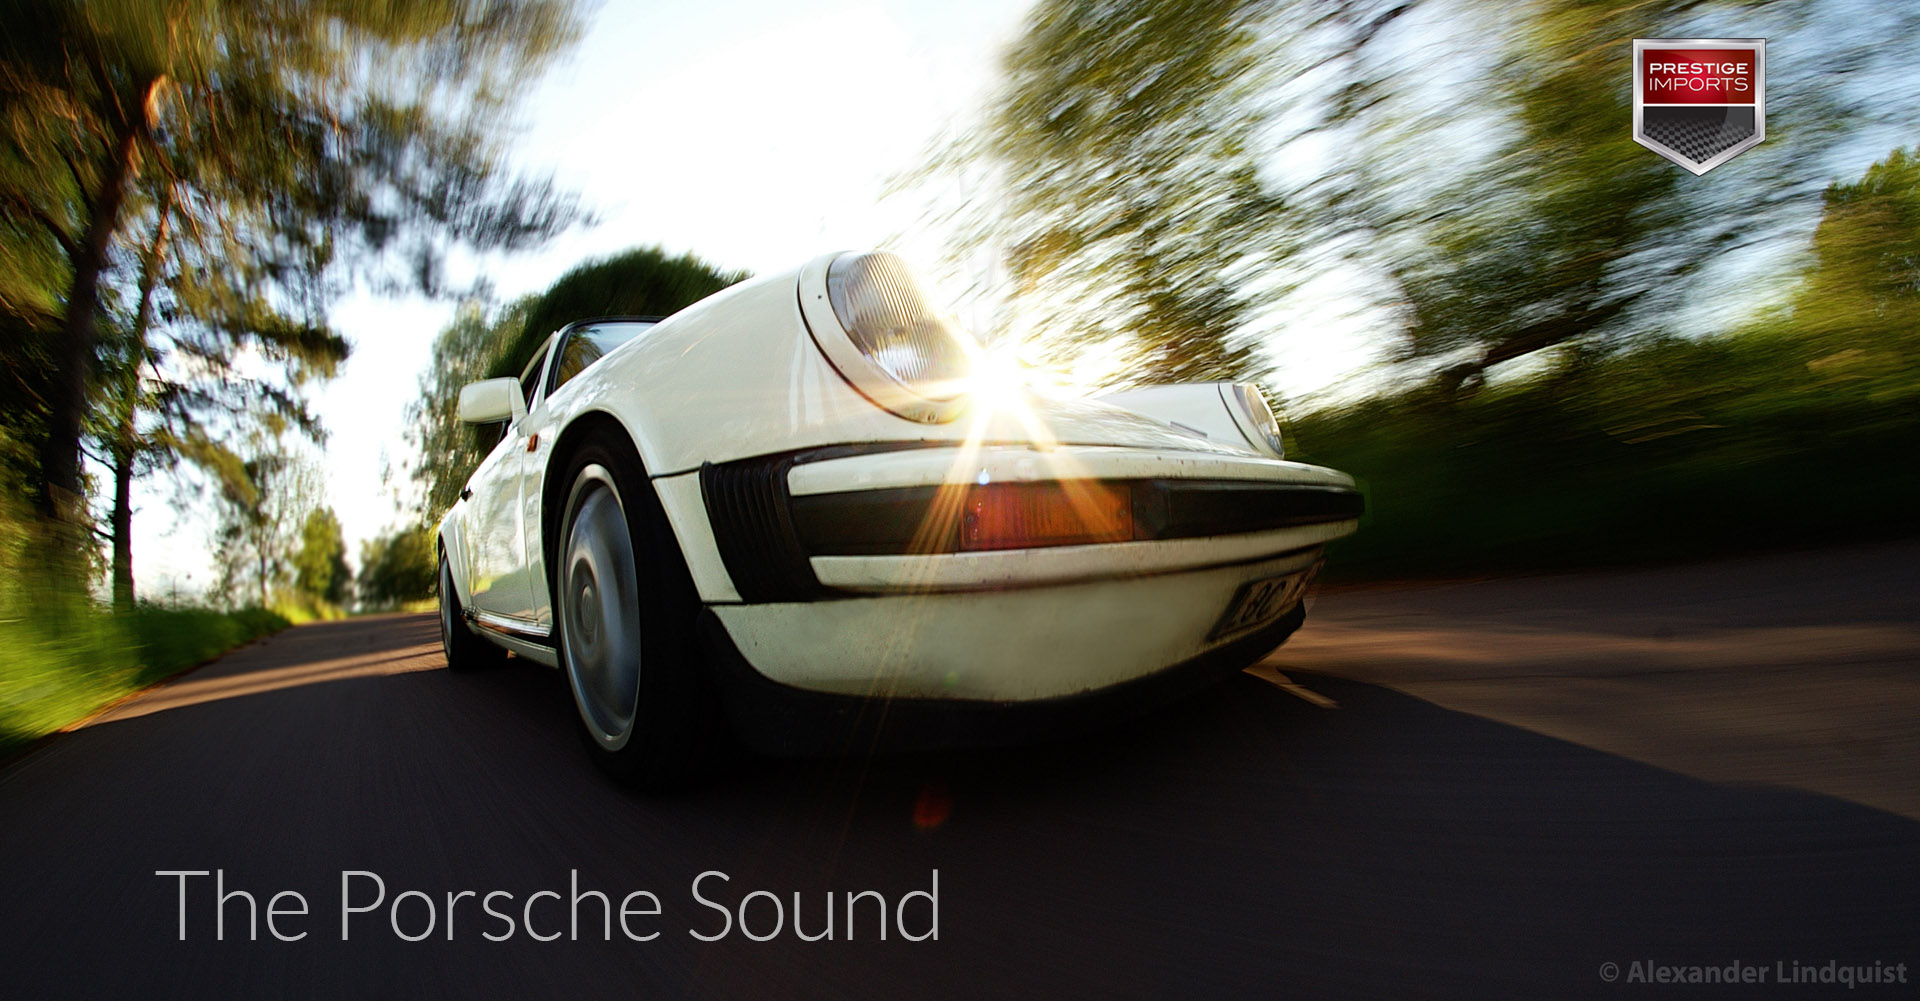 The Porsche Sound - Low angle view of a classic Porsche driving on a country road.